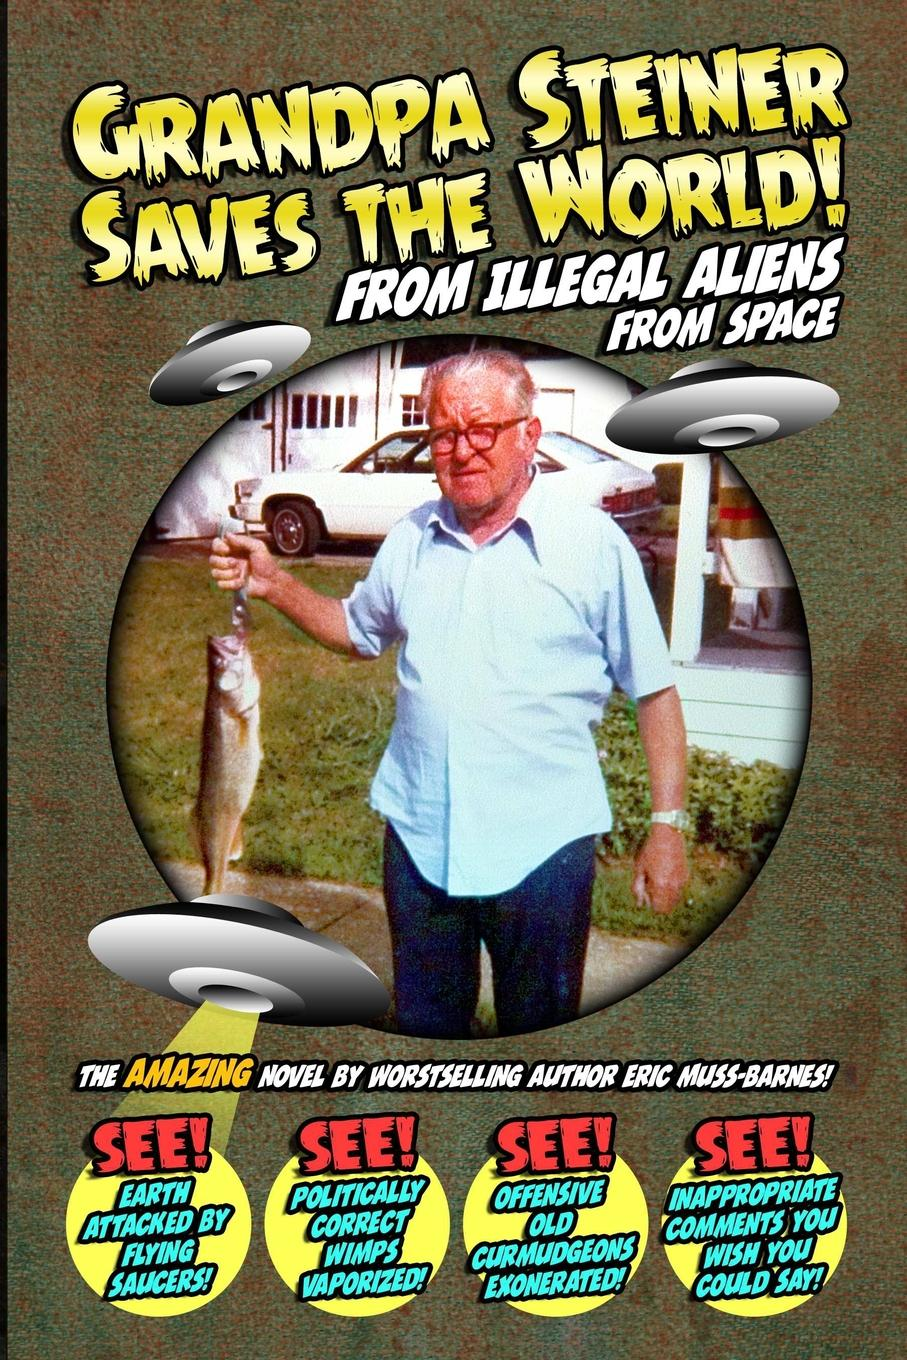 Eric Muss-Barnes Grandpa Steiner Saves the World (from Illegal Aliens (from Space)) my grandpa